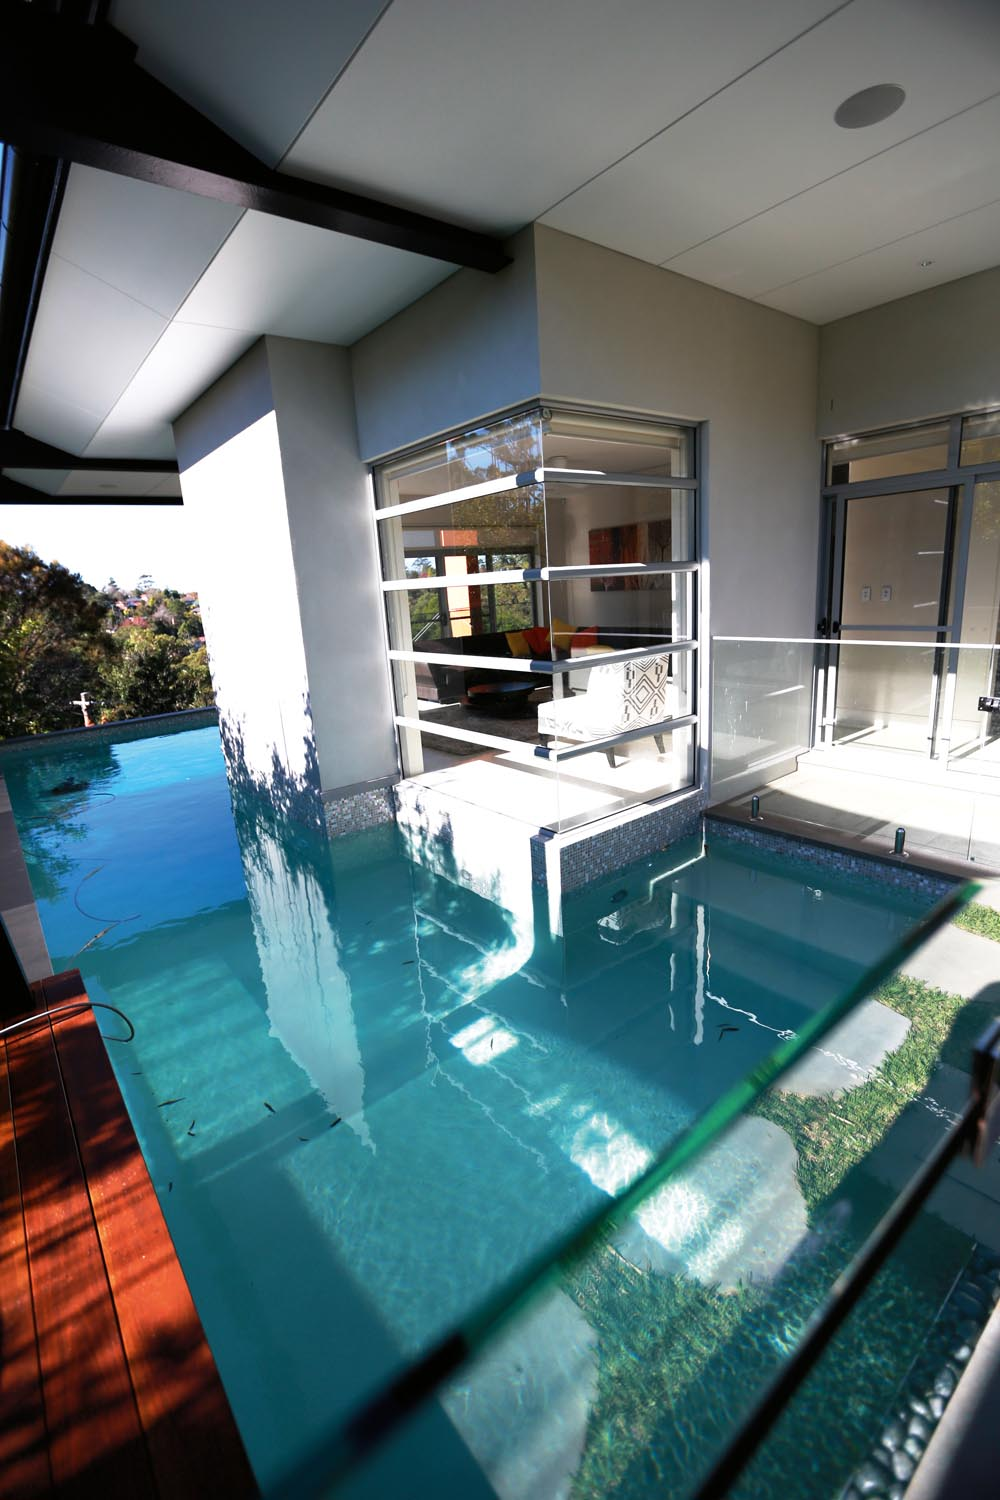 We love this Senator Pools design